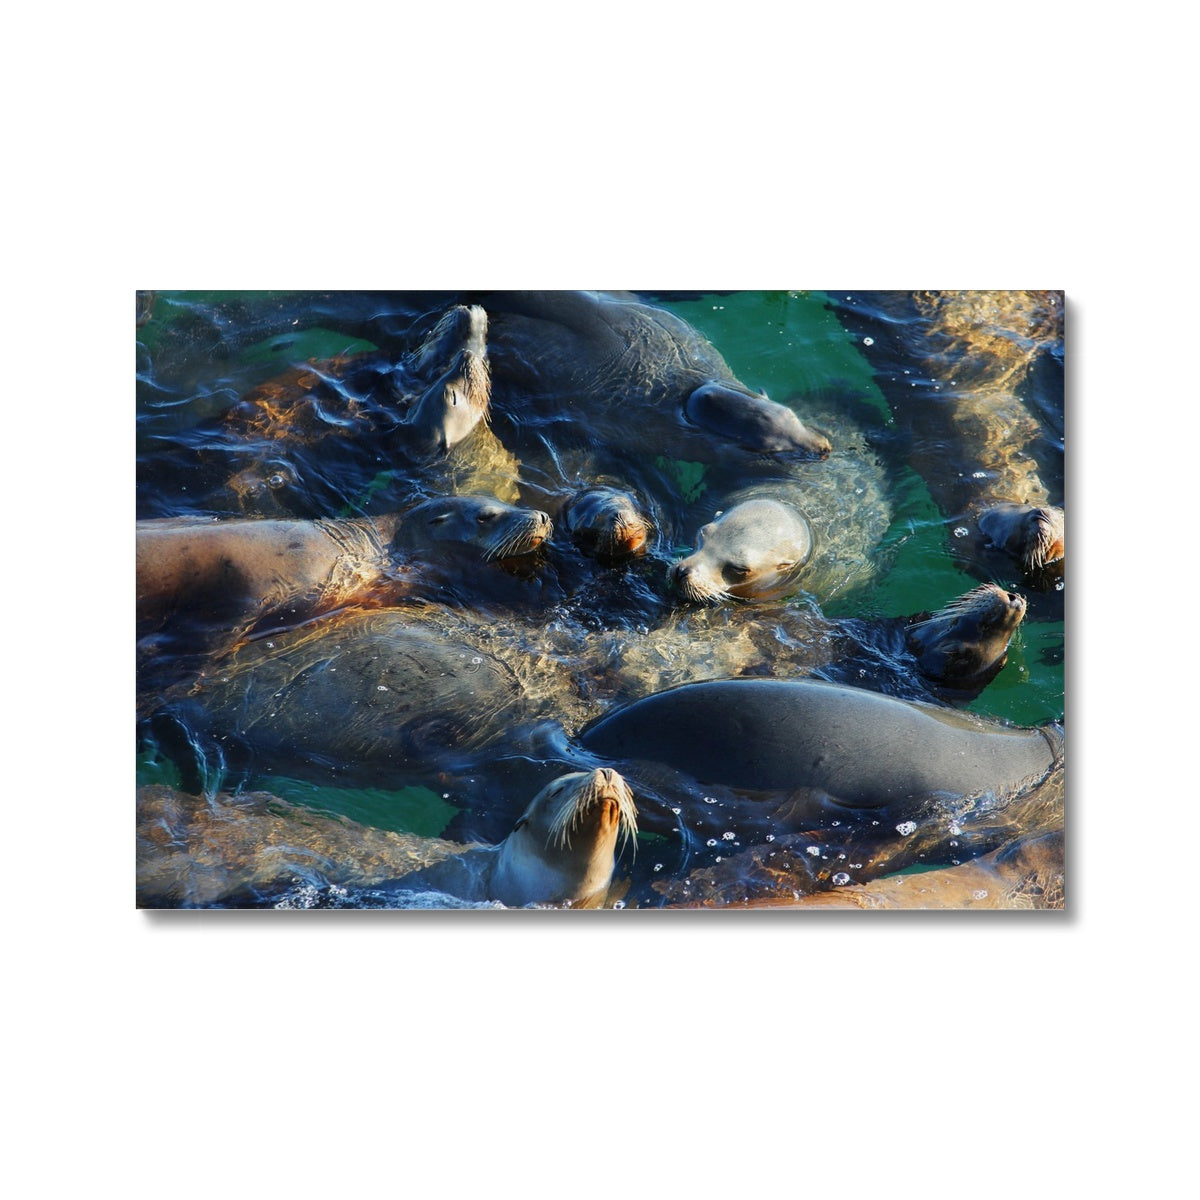 Seal Snuggles - California - Canvas